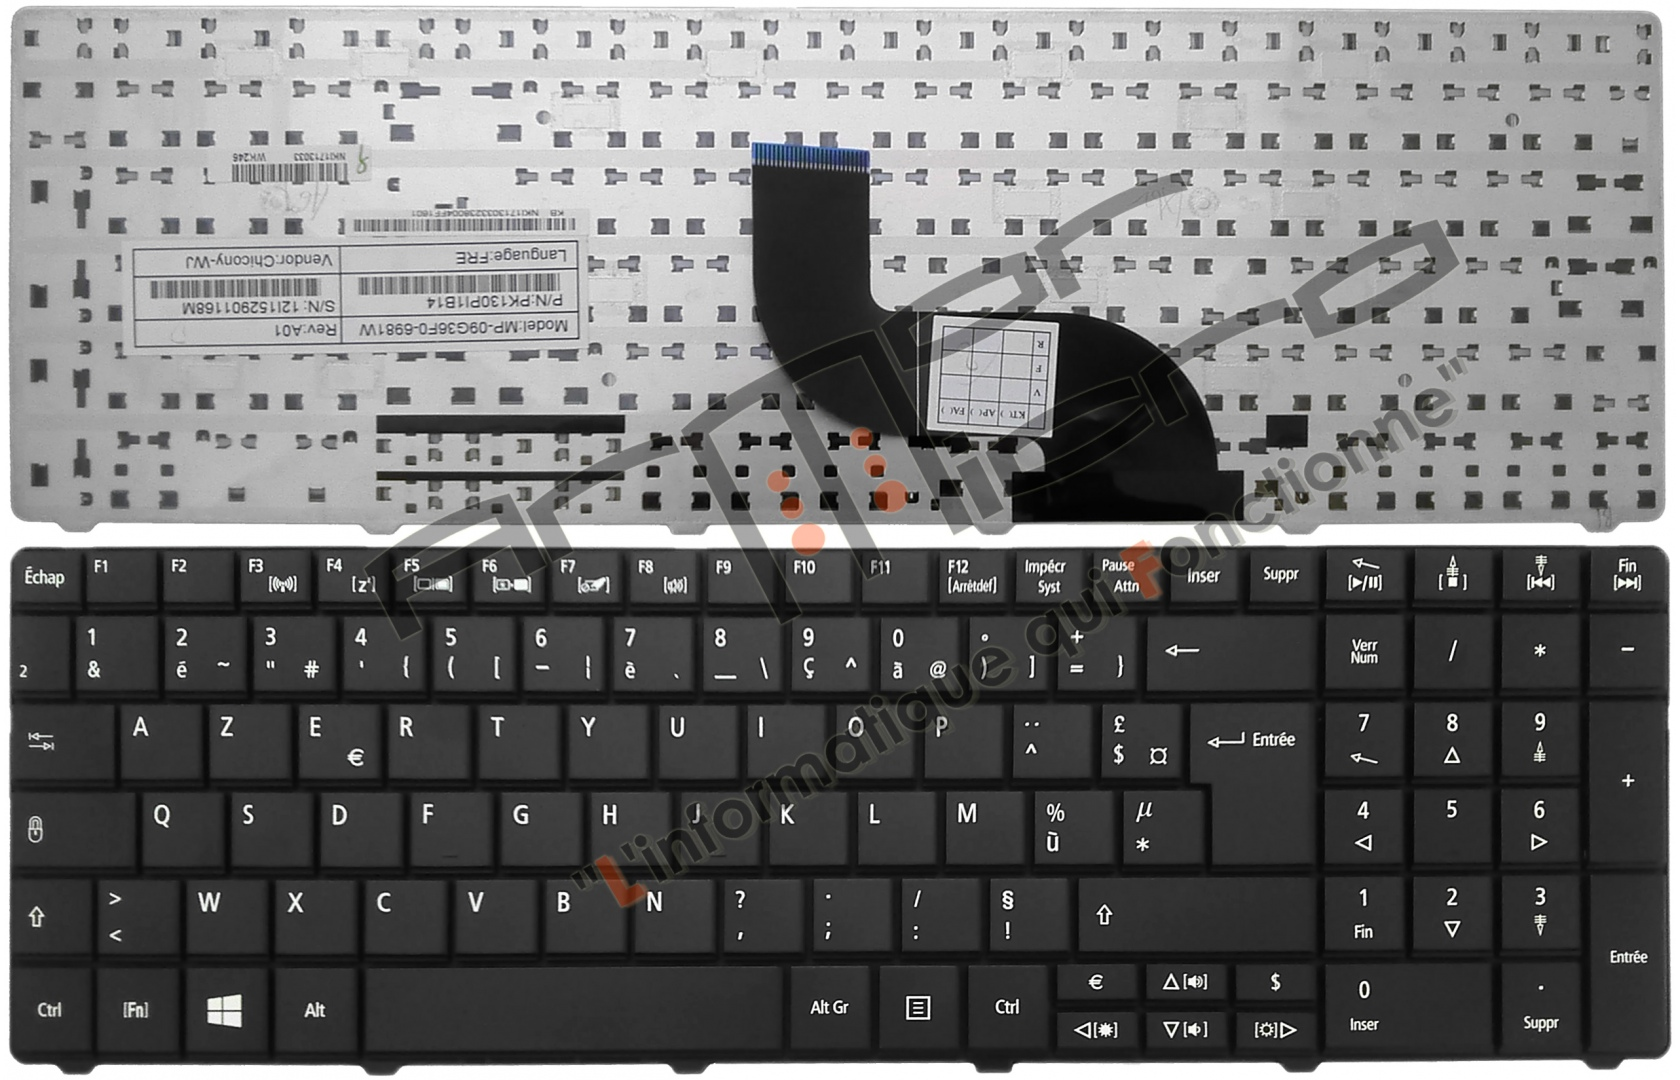 acer aspire clavier